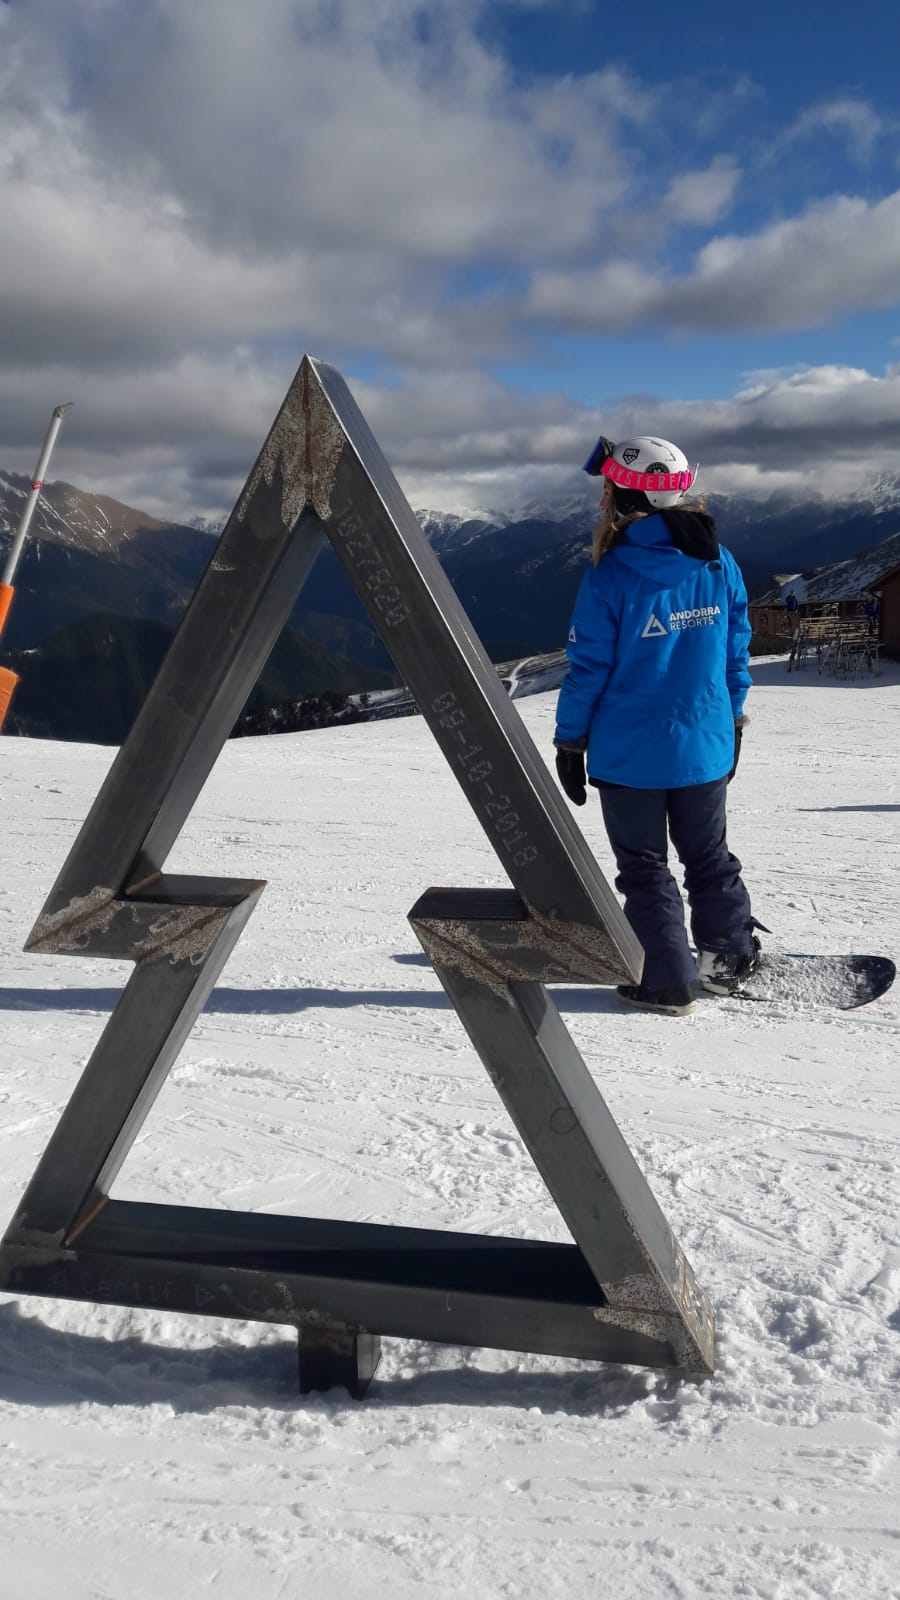 The photo point in Arinsal